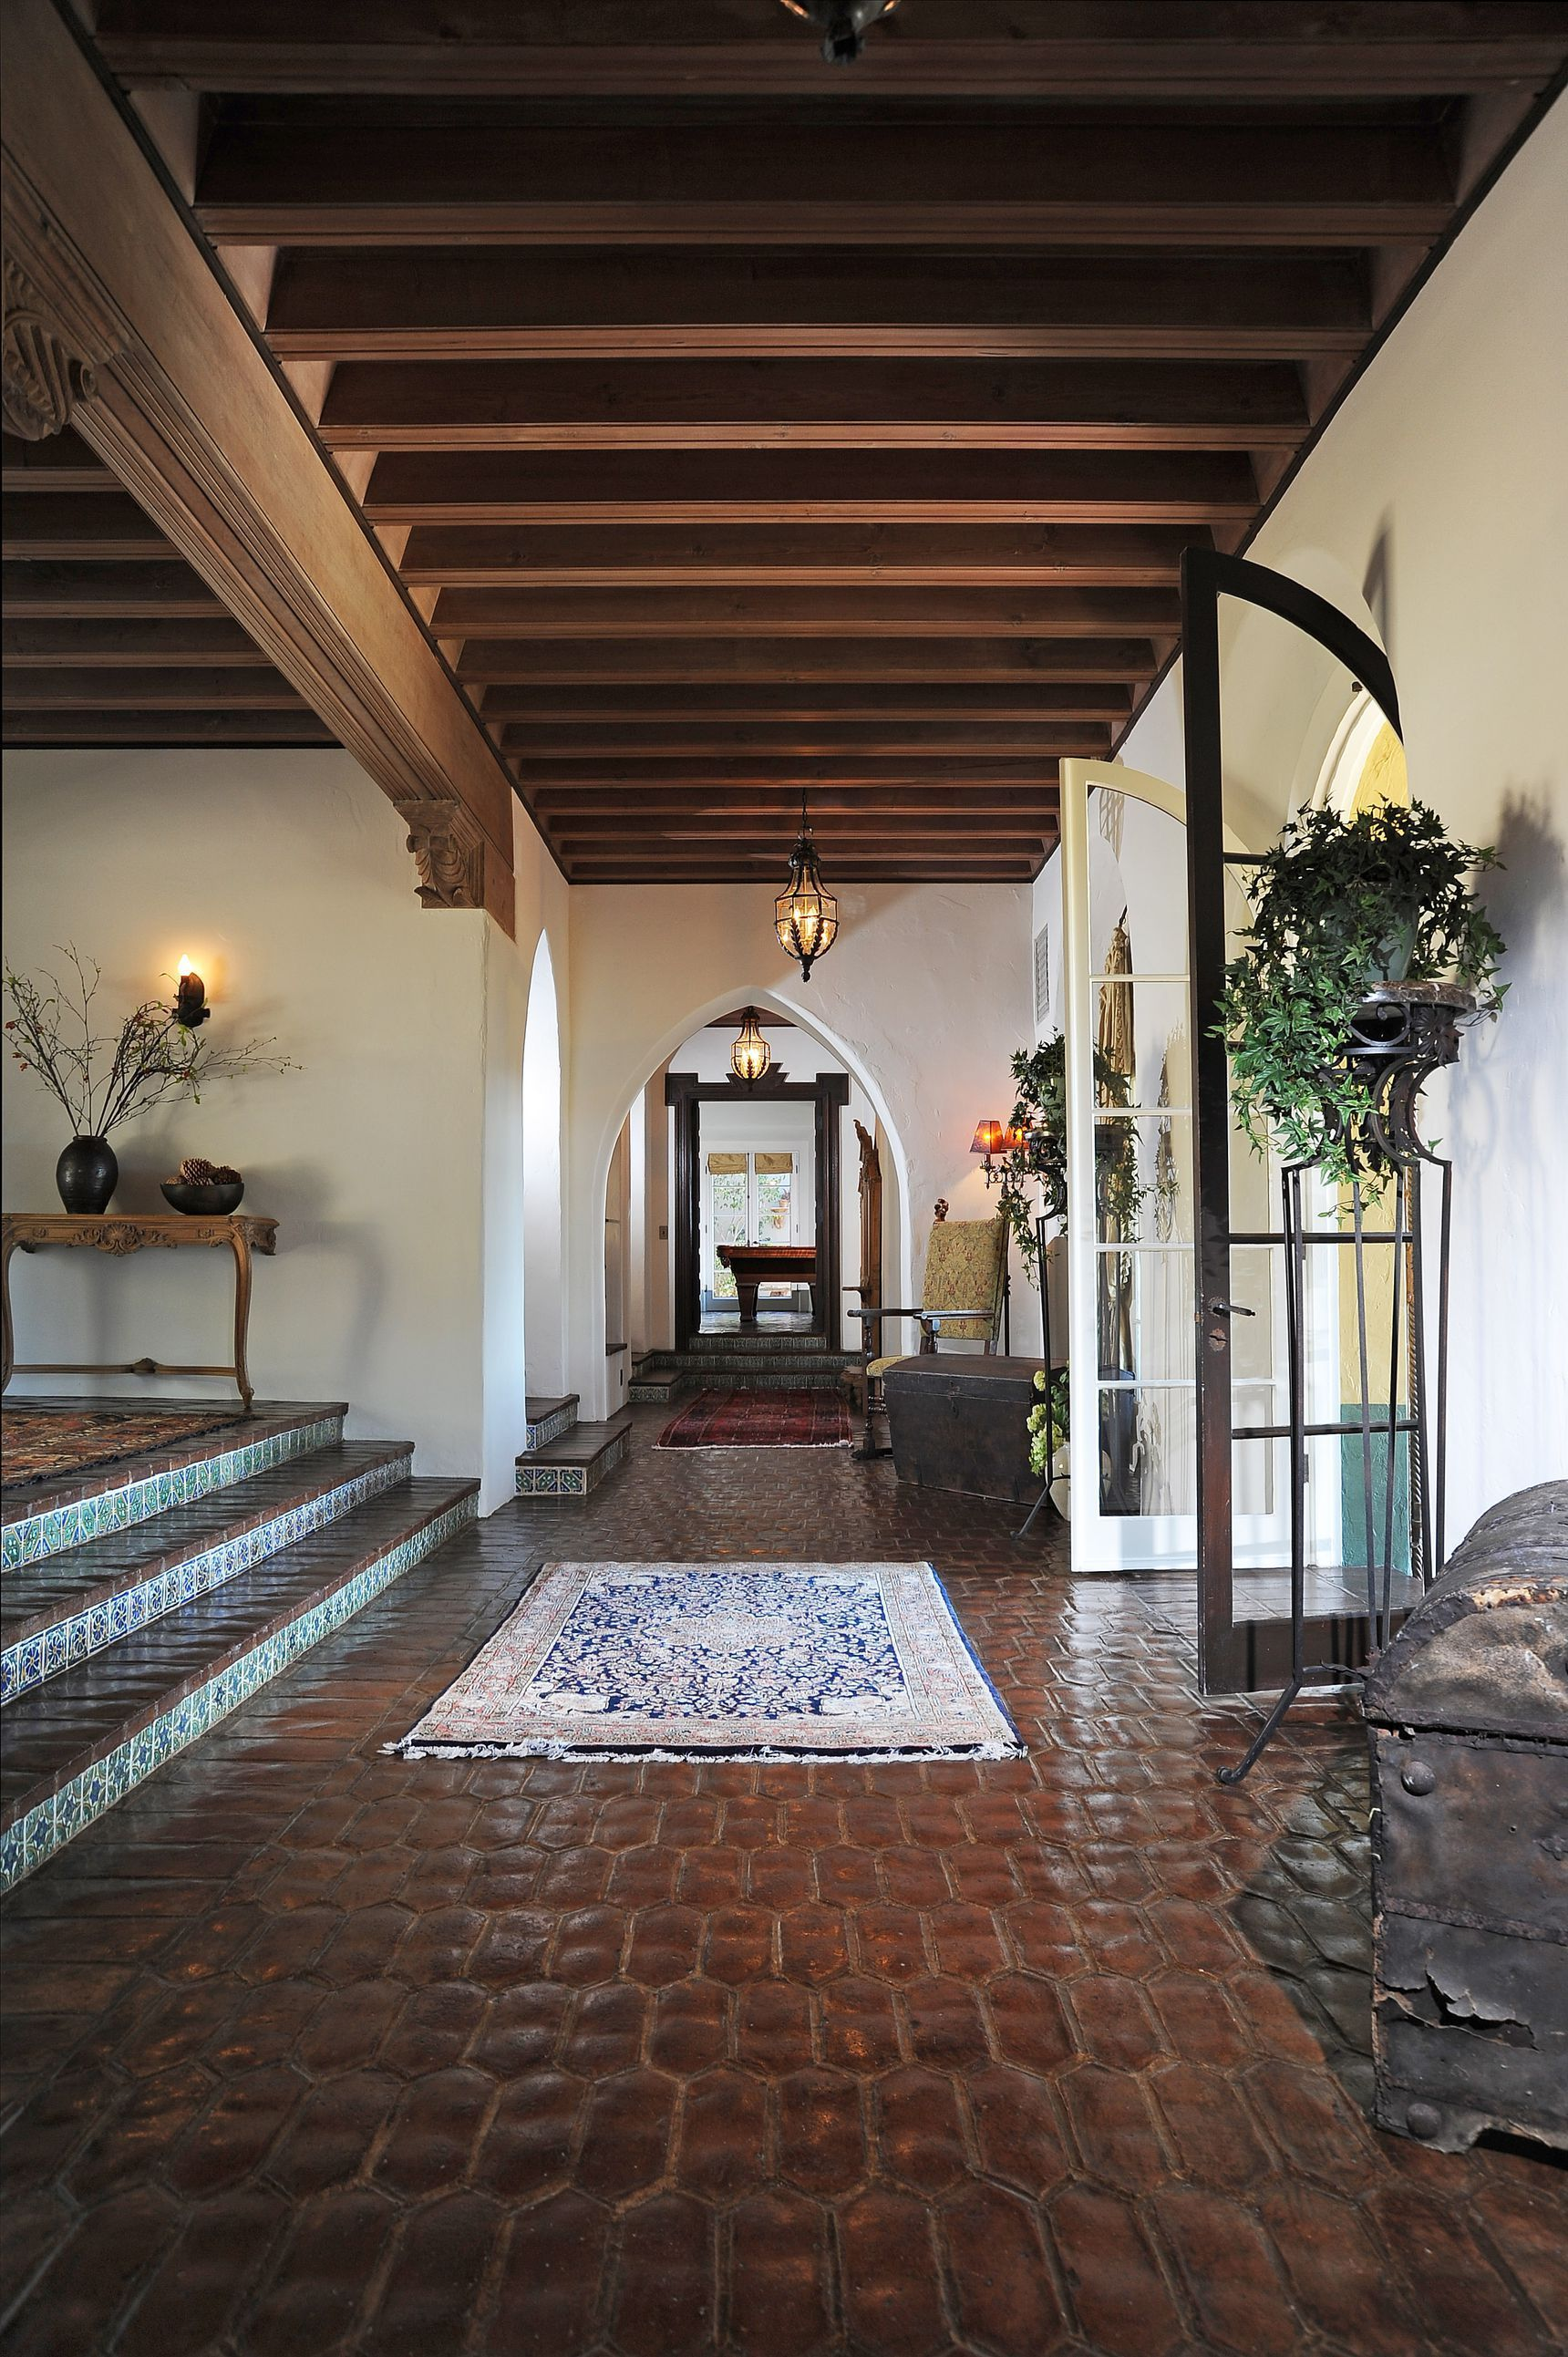 Stunning Spanish Revival is SoCal living at its finest for $17.9M images